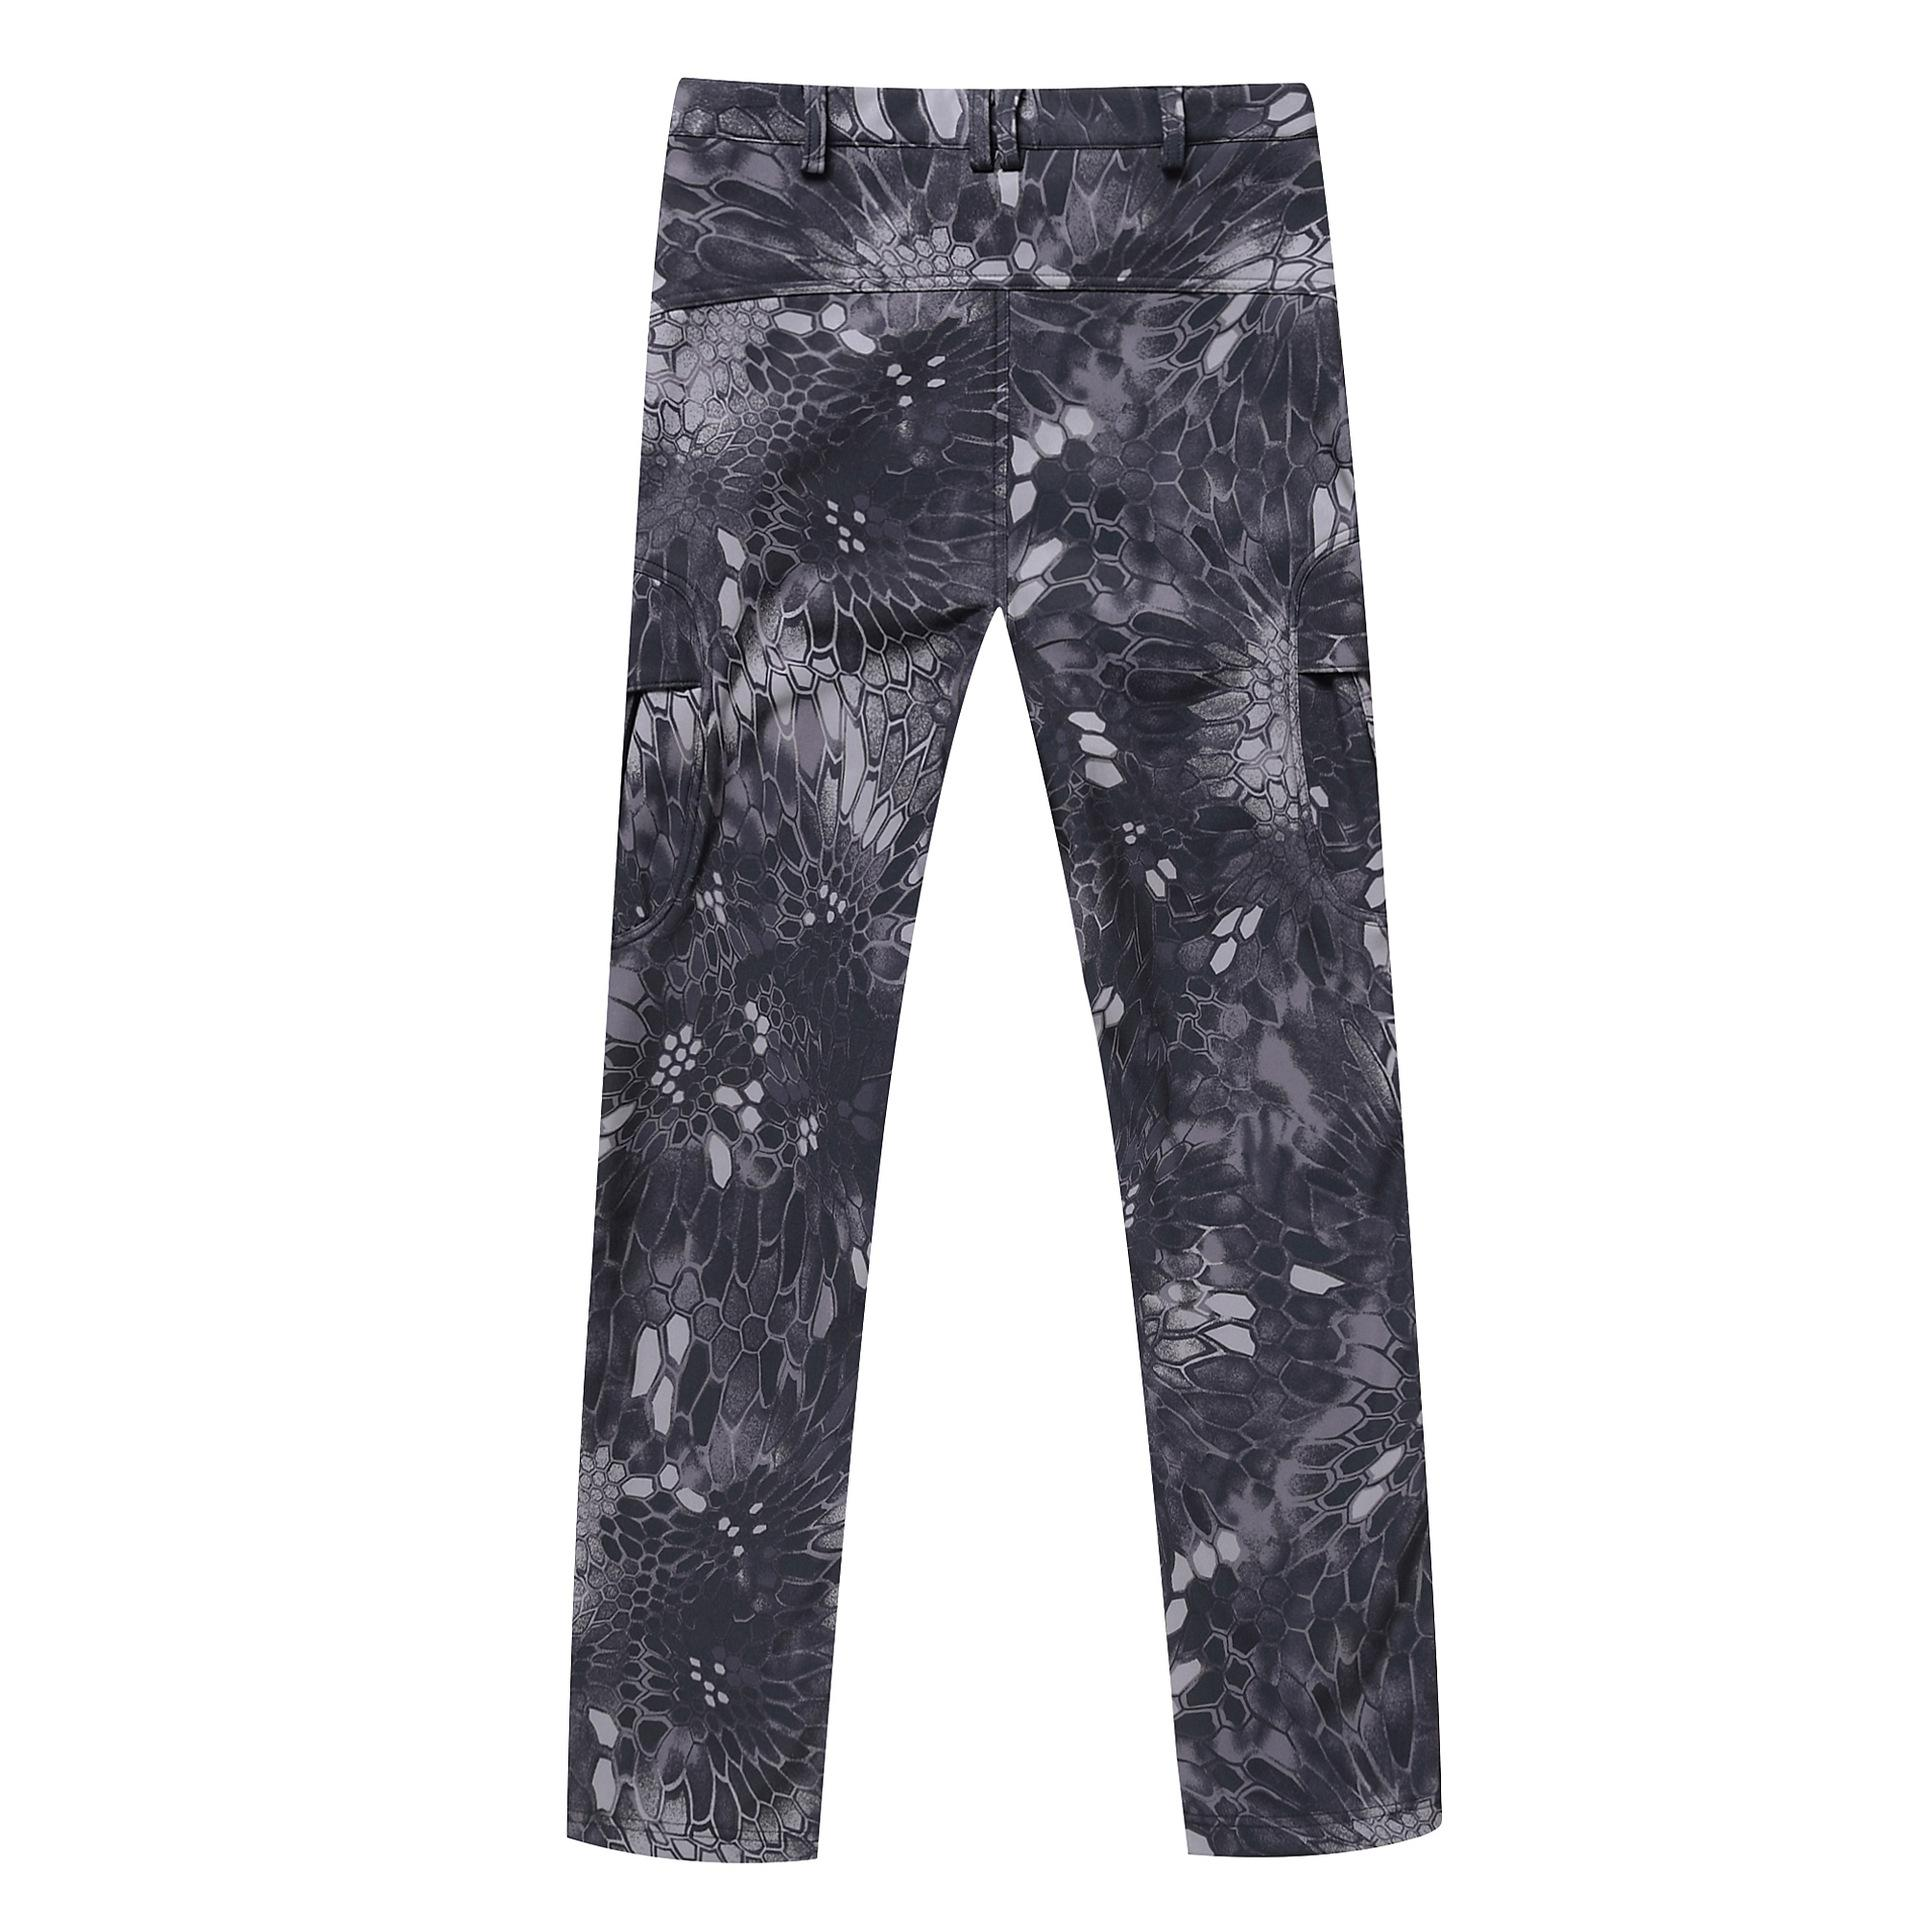 Upgrade to TAD model of shark skin soft shell charge fleece pants man climbing trousers Unisex Tactical camouflage pants python lines